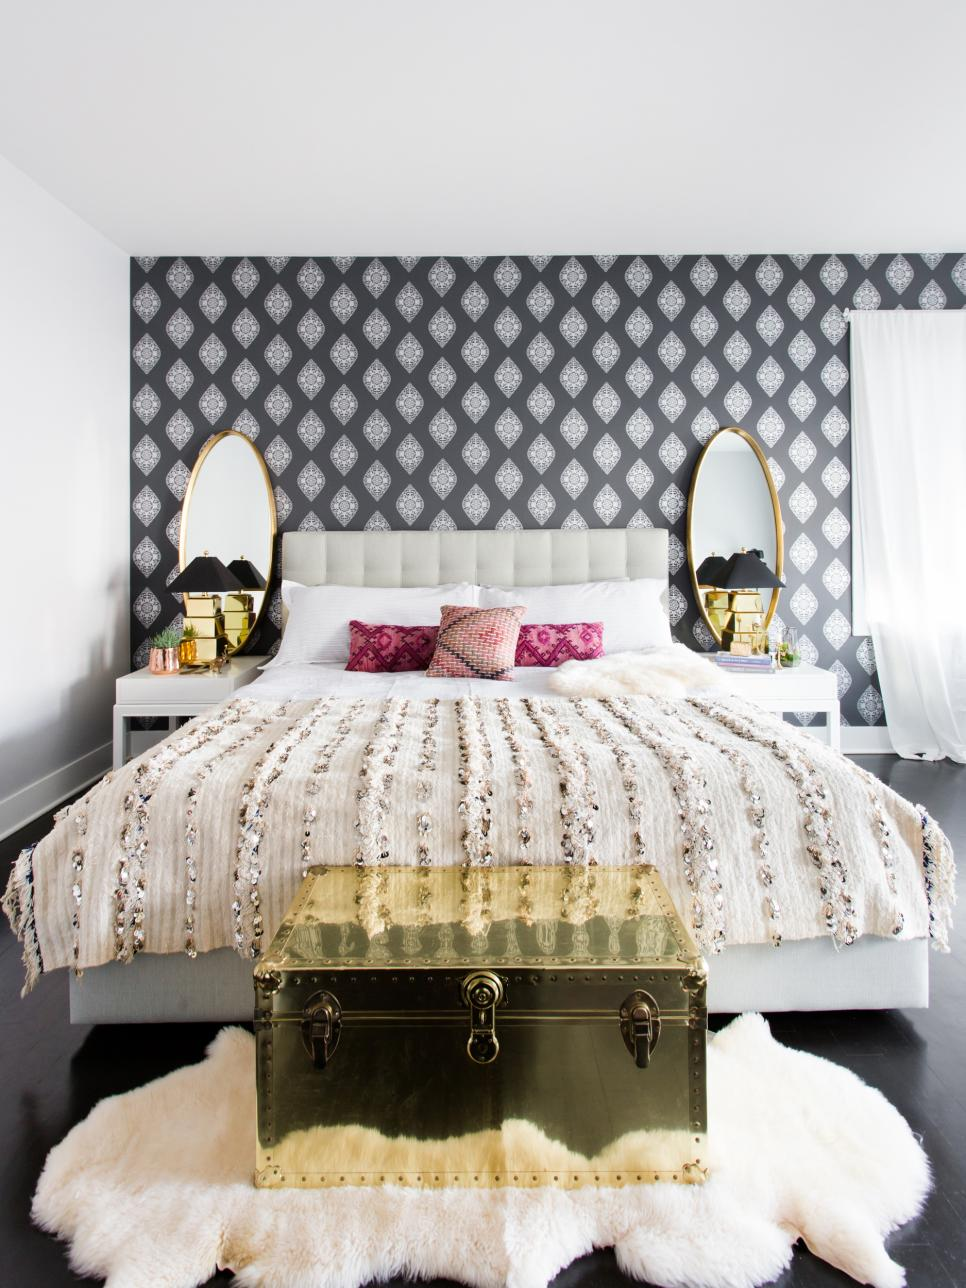 Glamorous Bedroom With Gray And White Wallpaper Accent Wall Hgtv